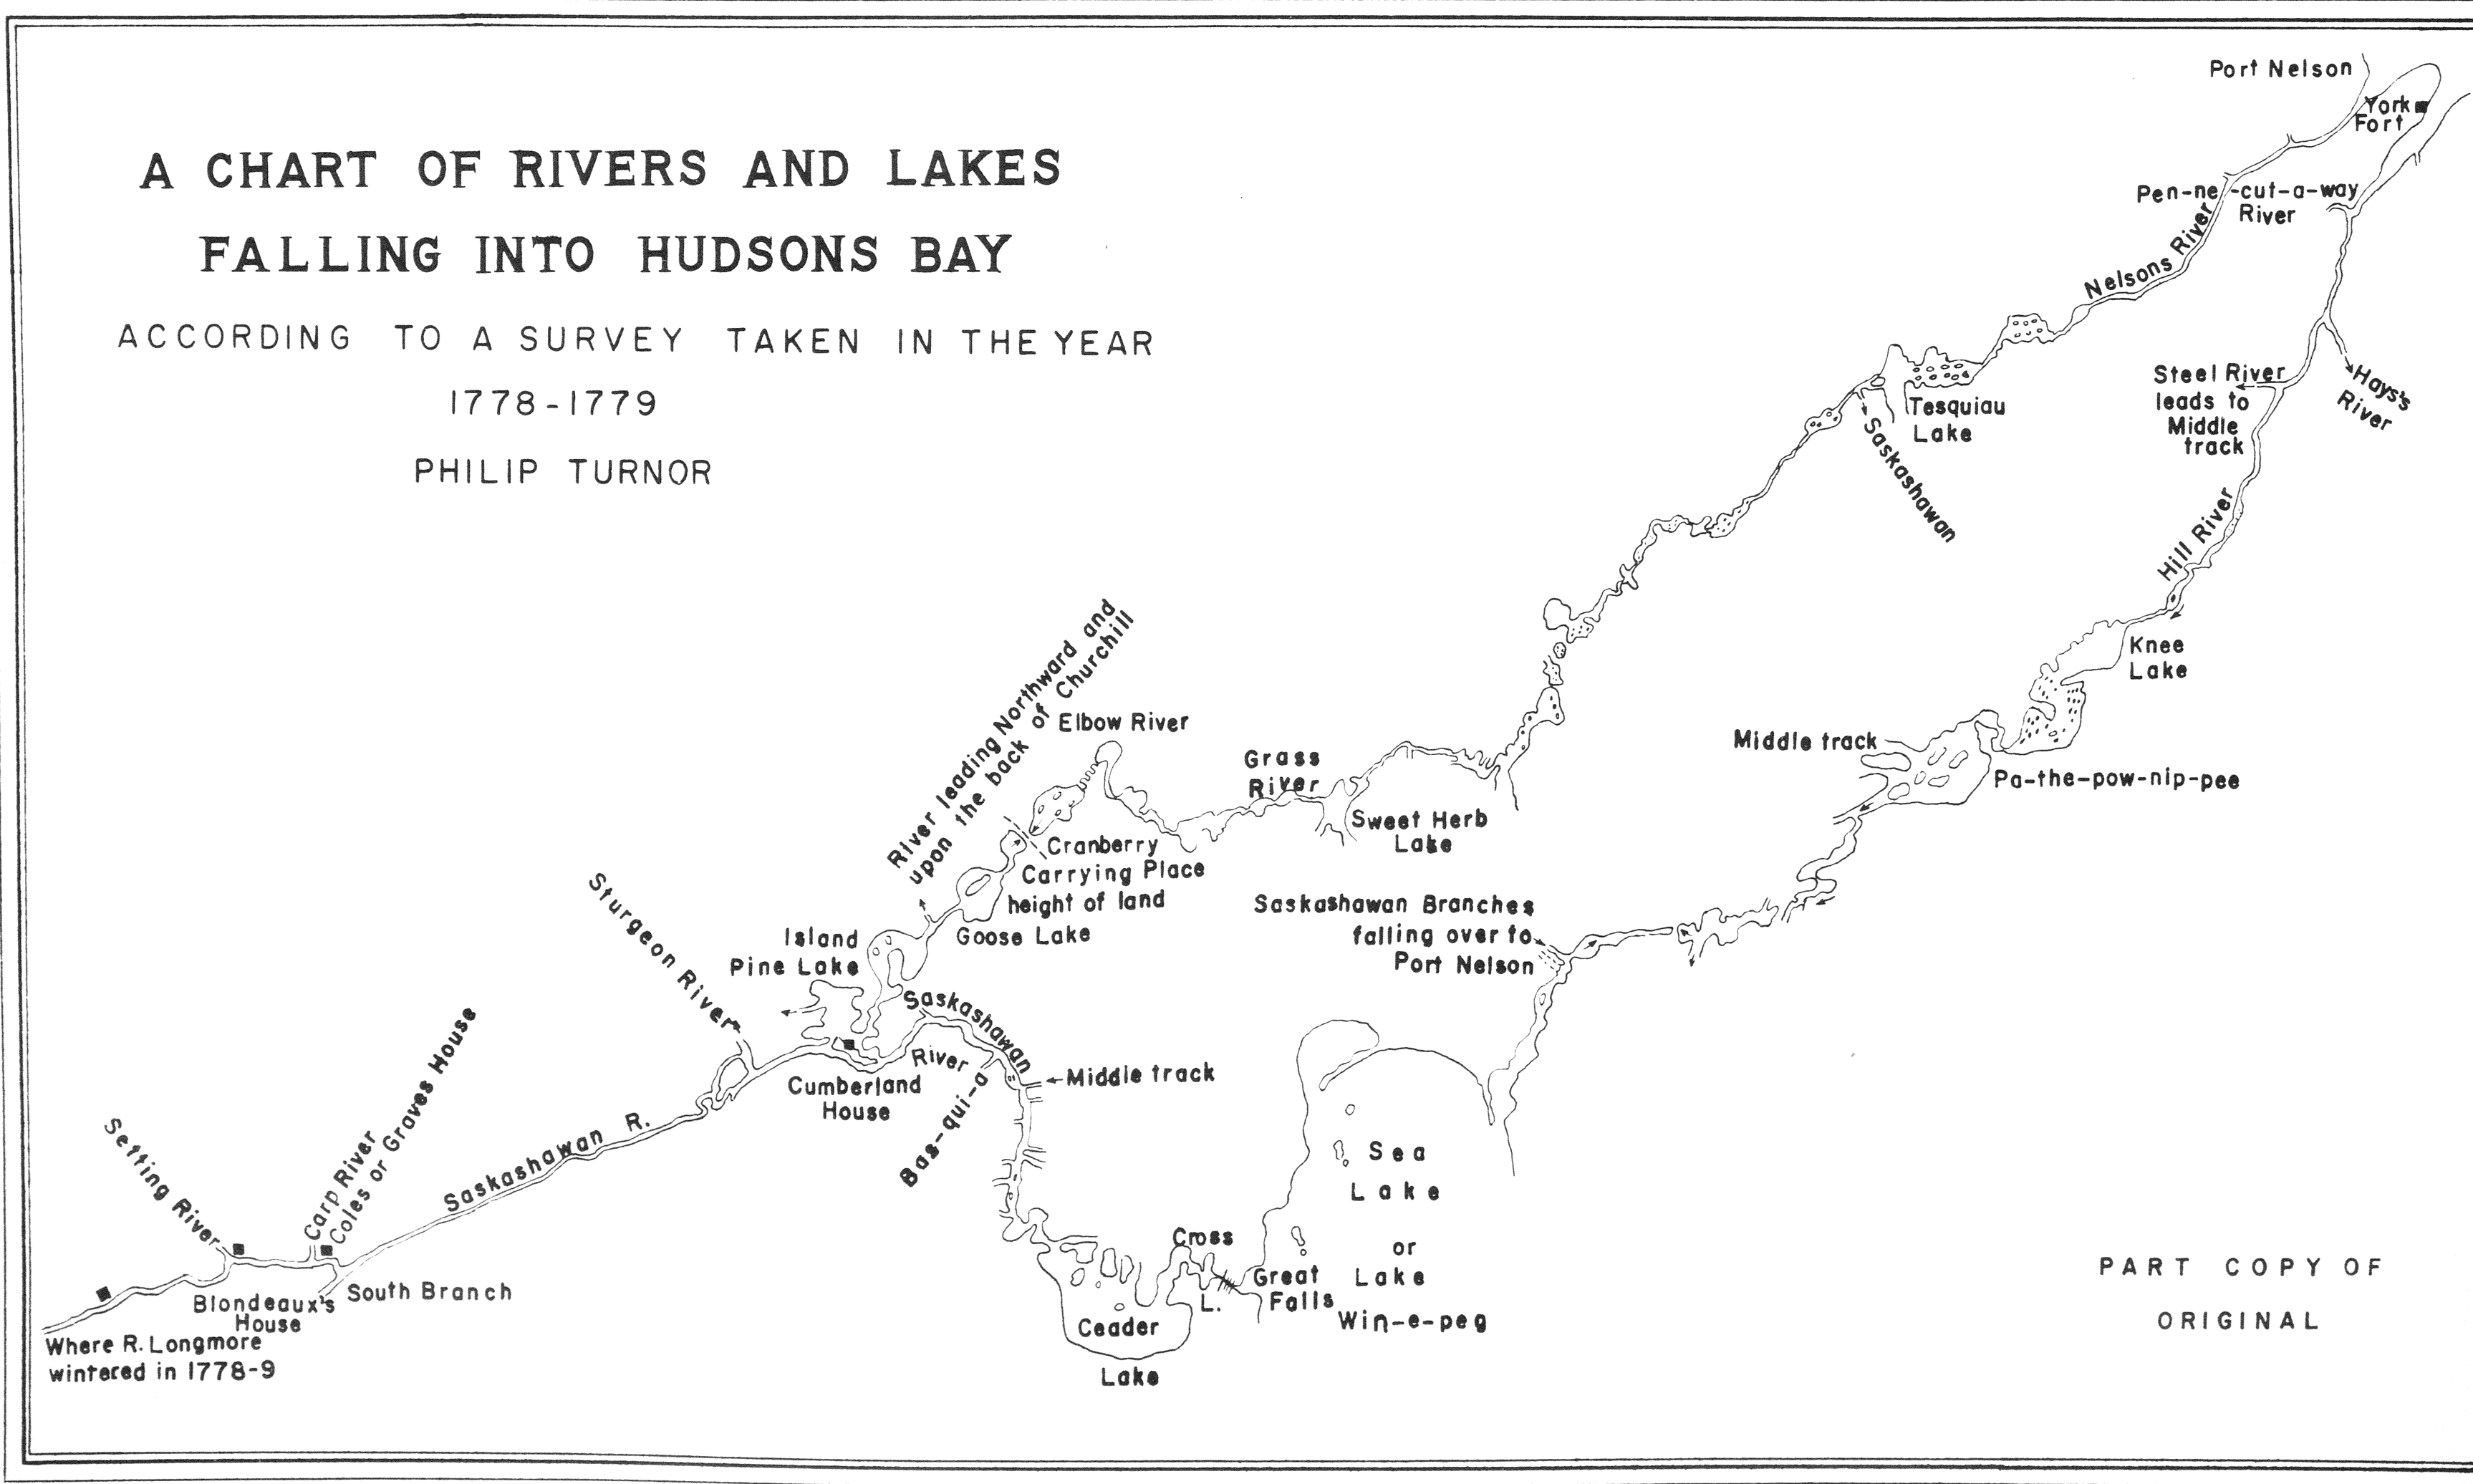 Paper Weight Chart: A Chart of Rivers and Lakes Falling into Hudsons Bay ,Chart